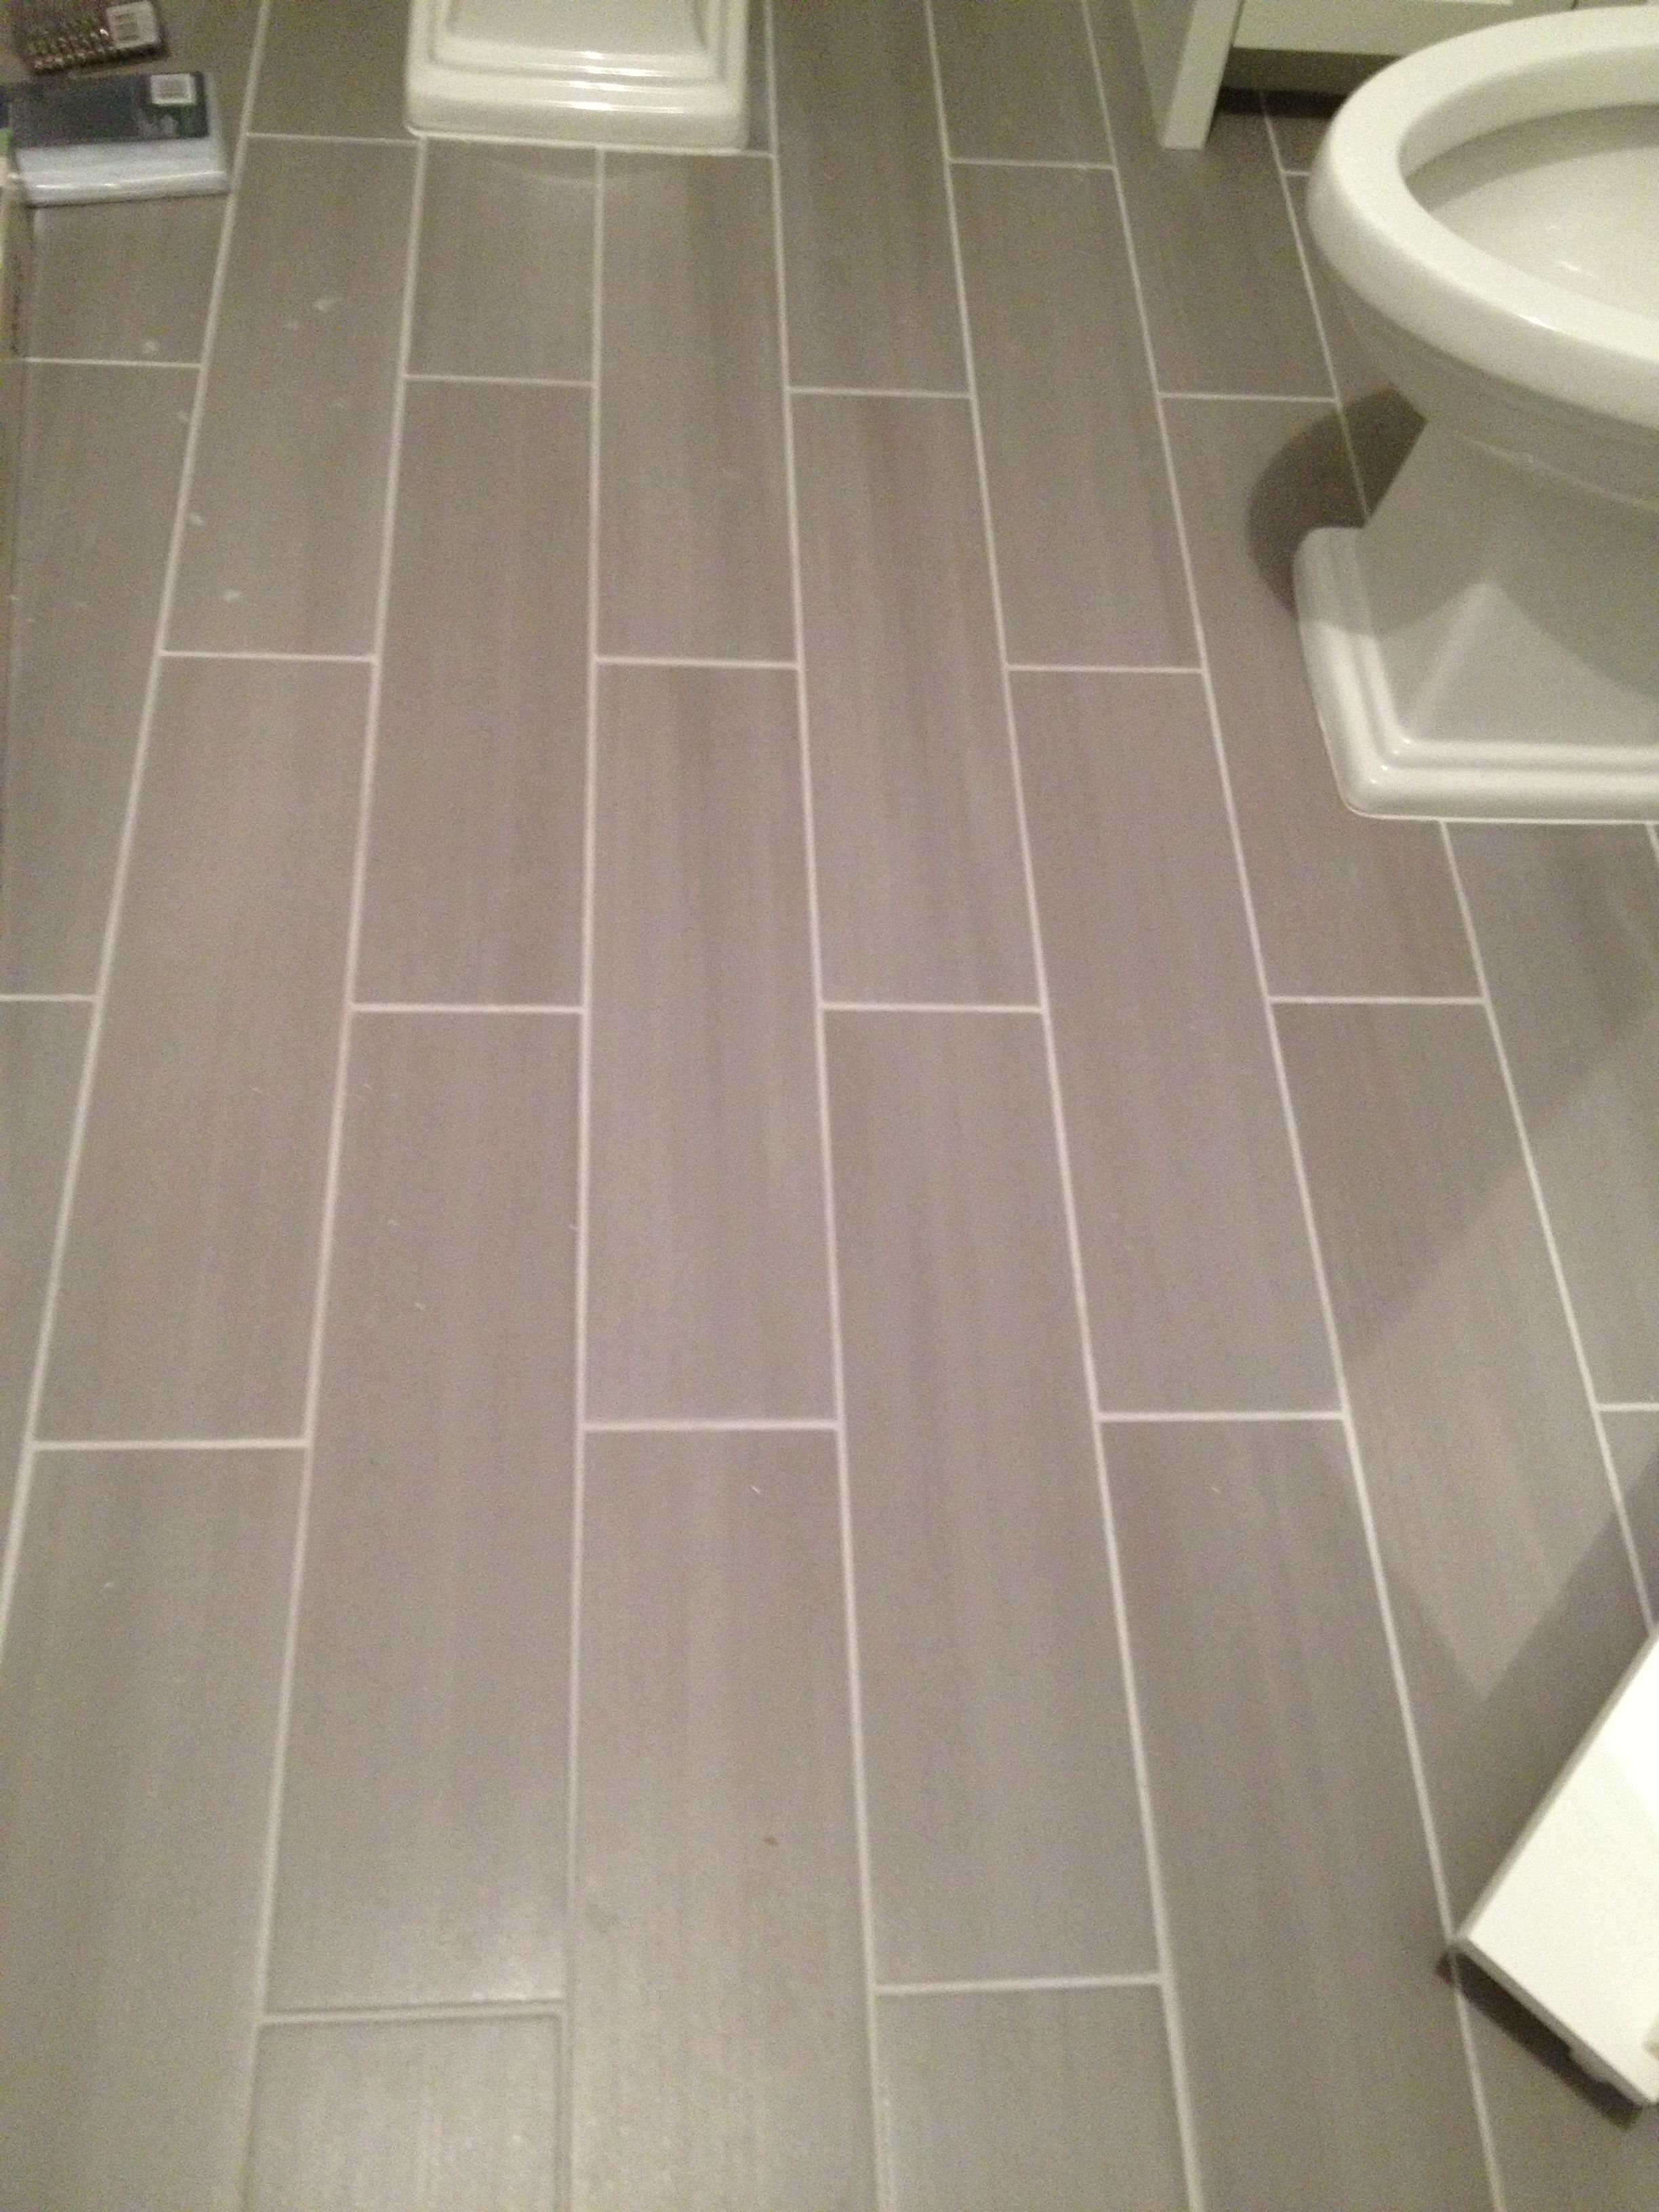 Guest bath plank style floor tiles in gray sarah bernardy guest bath plank style floor tiles in gray dailygadgetfo Gallery